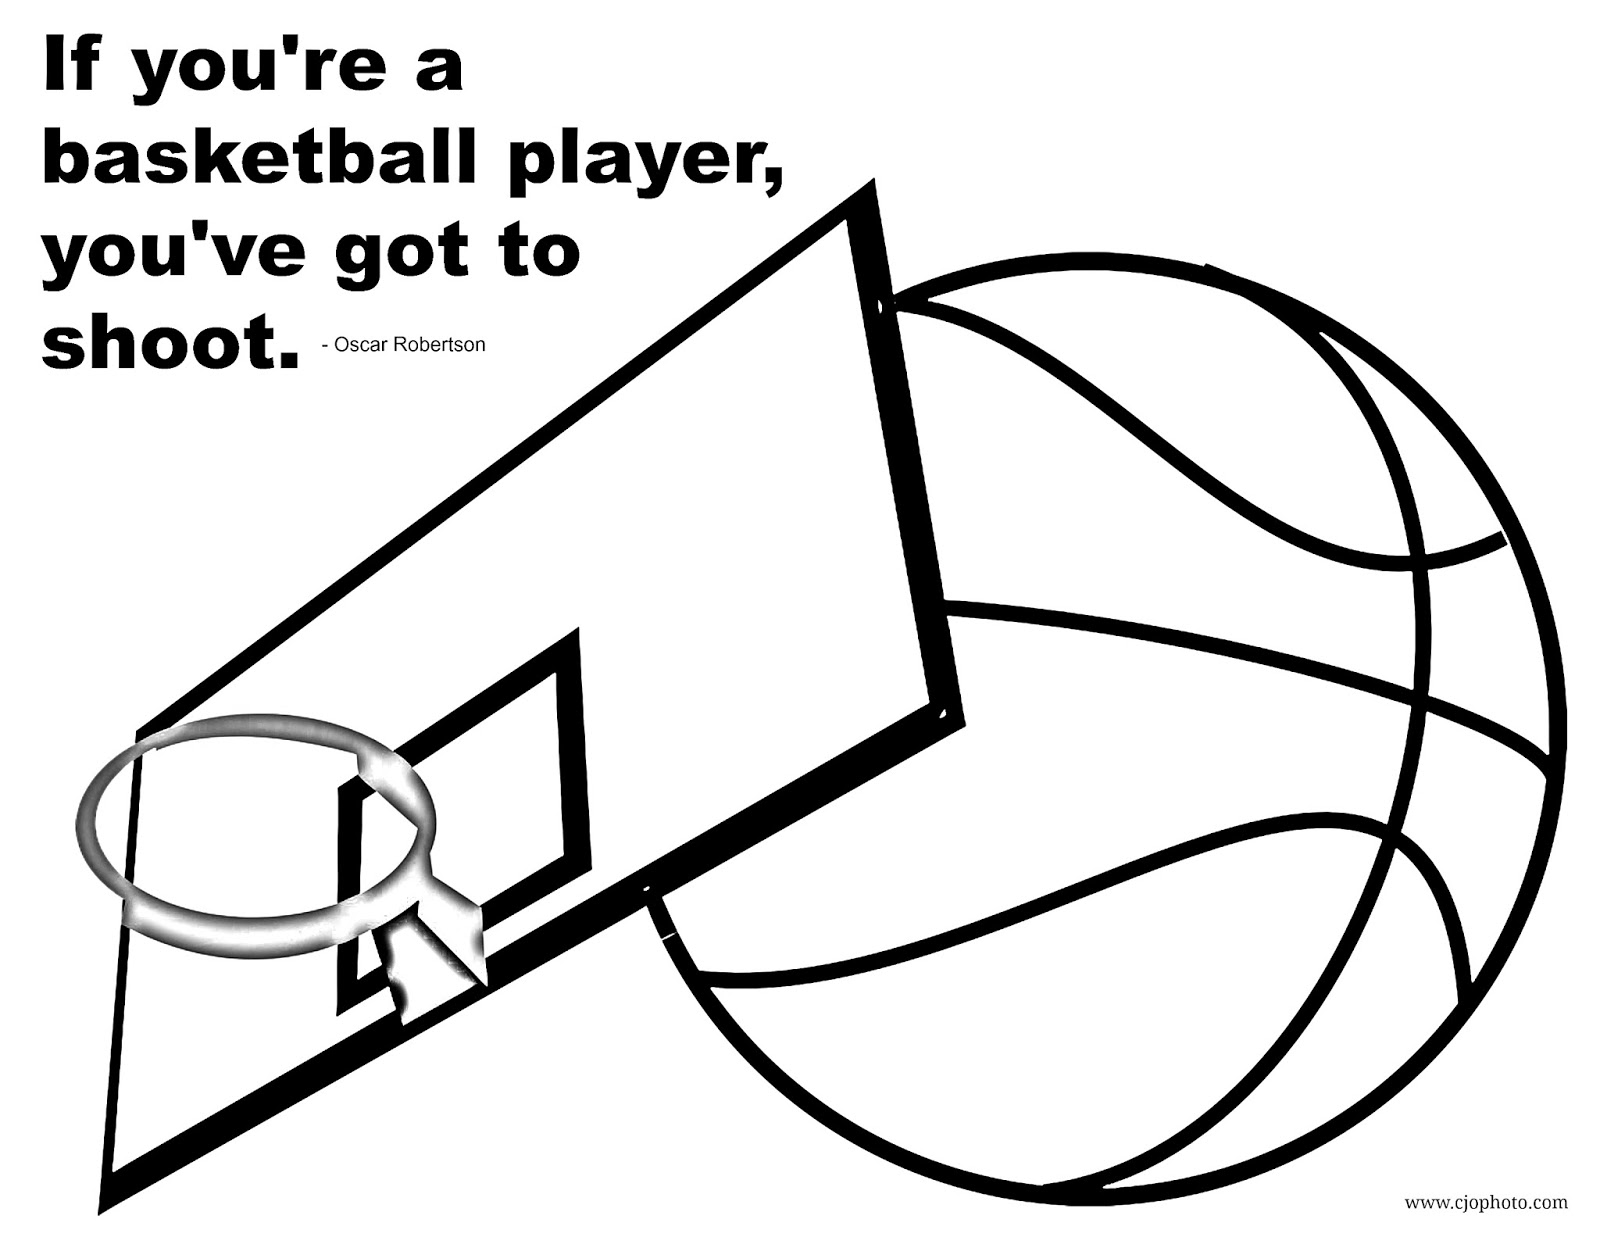 CJO Photo: Basketball Quote Coloring Page